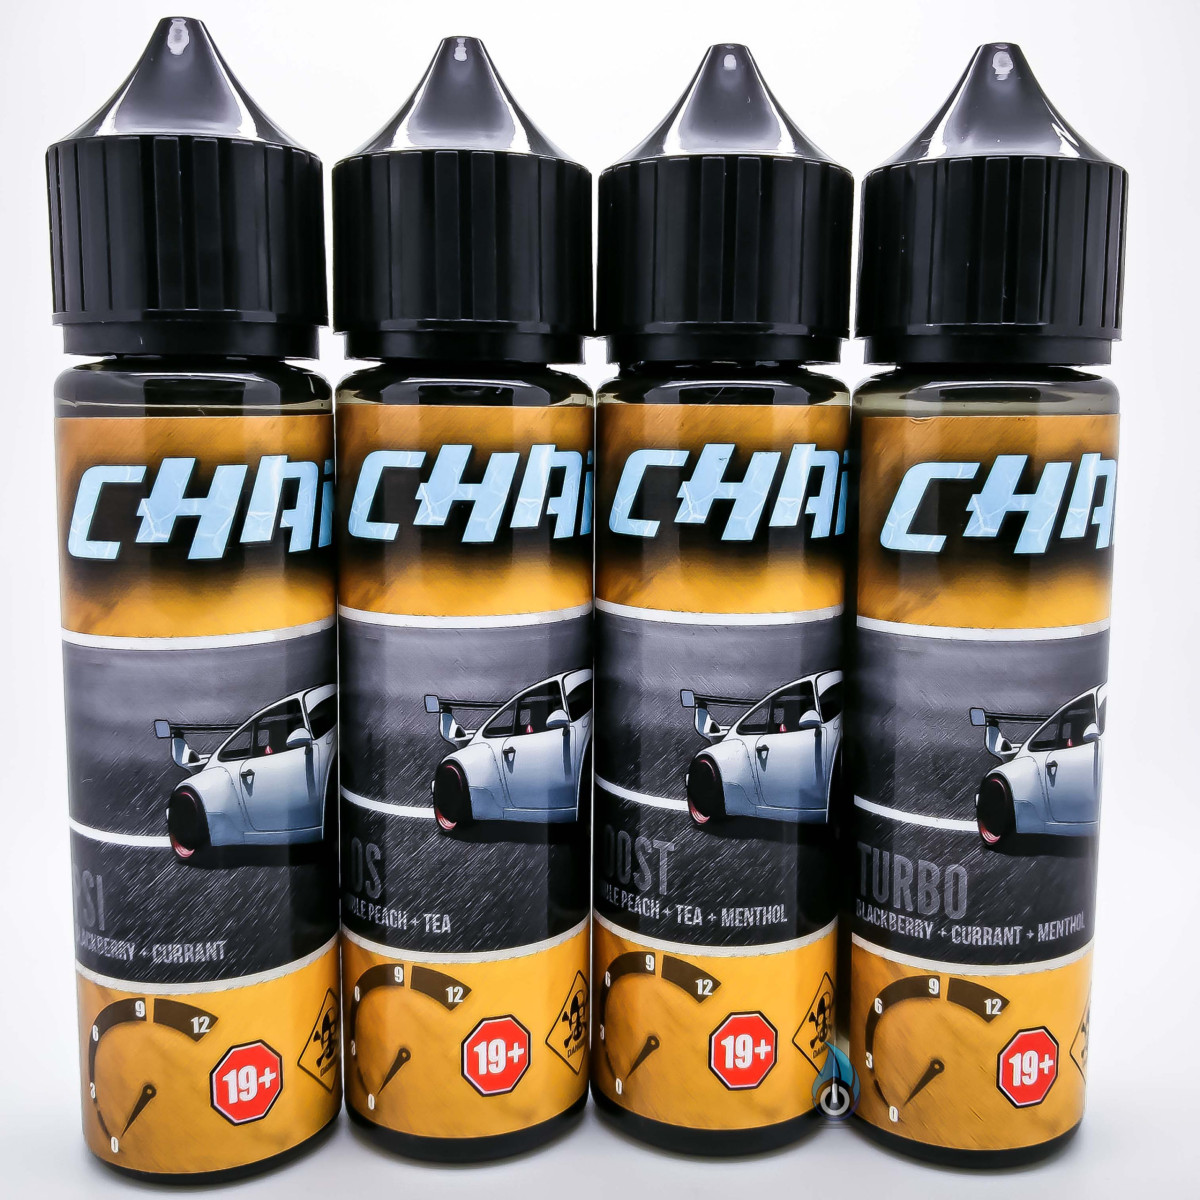 CHARGED E-JUICE Flavor's